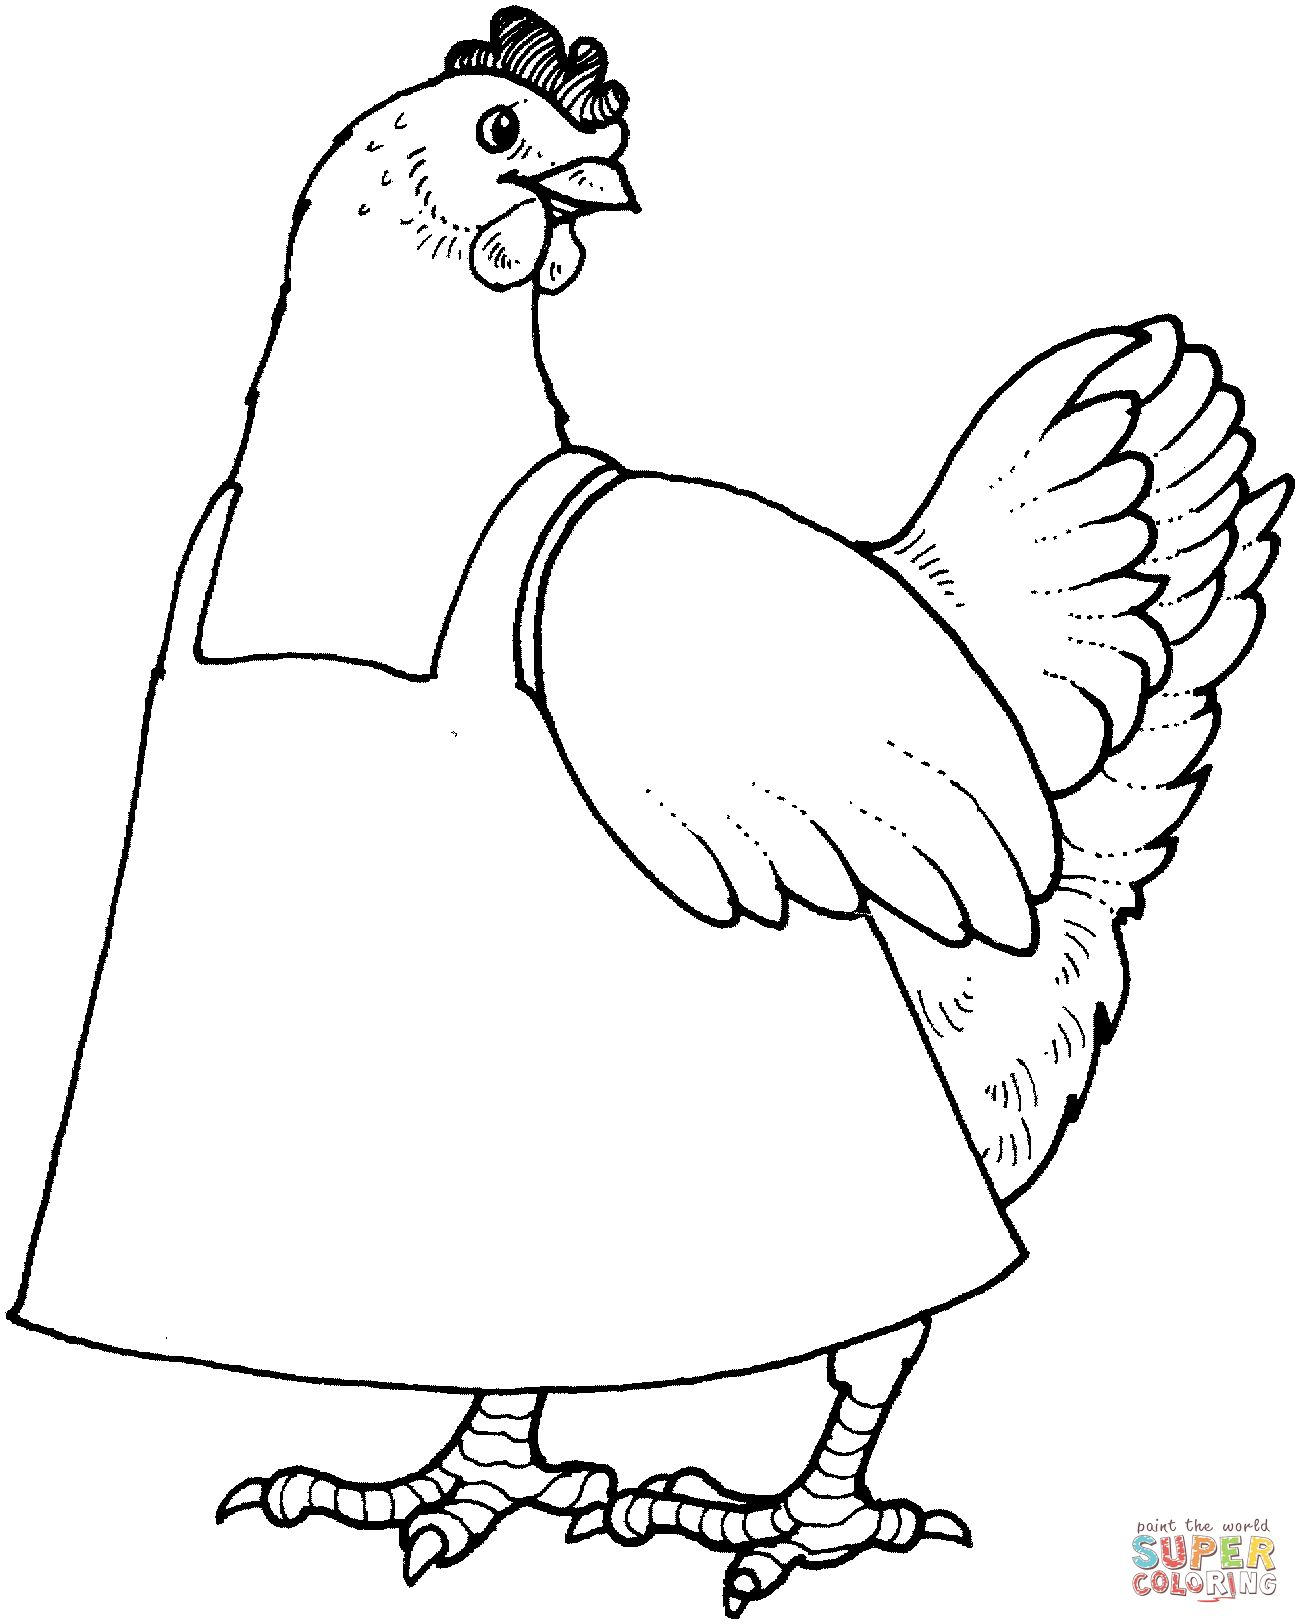 printable chicken chicken colouring page part 6 free resource for teaching printable chicken 1 1